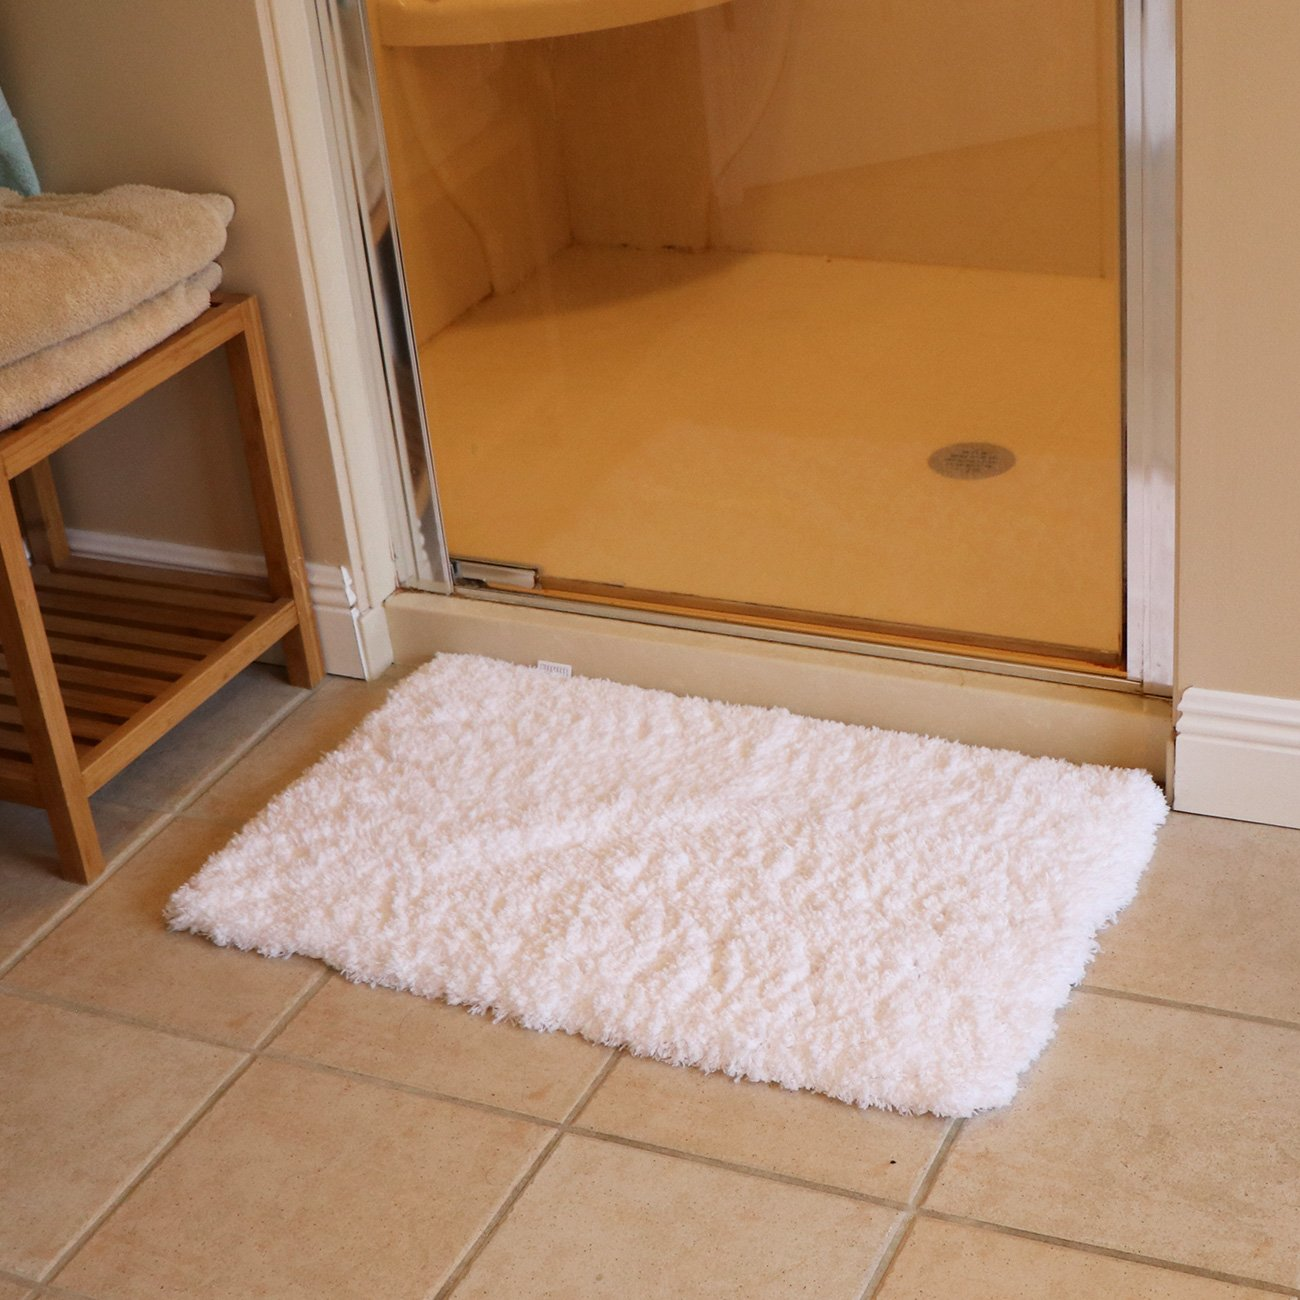 KMAT  Bath Mat 31'' x 19'' White Soft Plush Non Slip Absorbent Microfiber Bathroom and Shower Rugs Luxury Machine Washable Doormat Floor Mat For Bathroom Bathtub Bedroom Living Room Home Hotel by KMAT